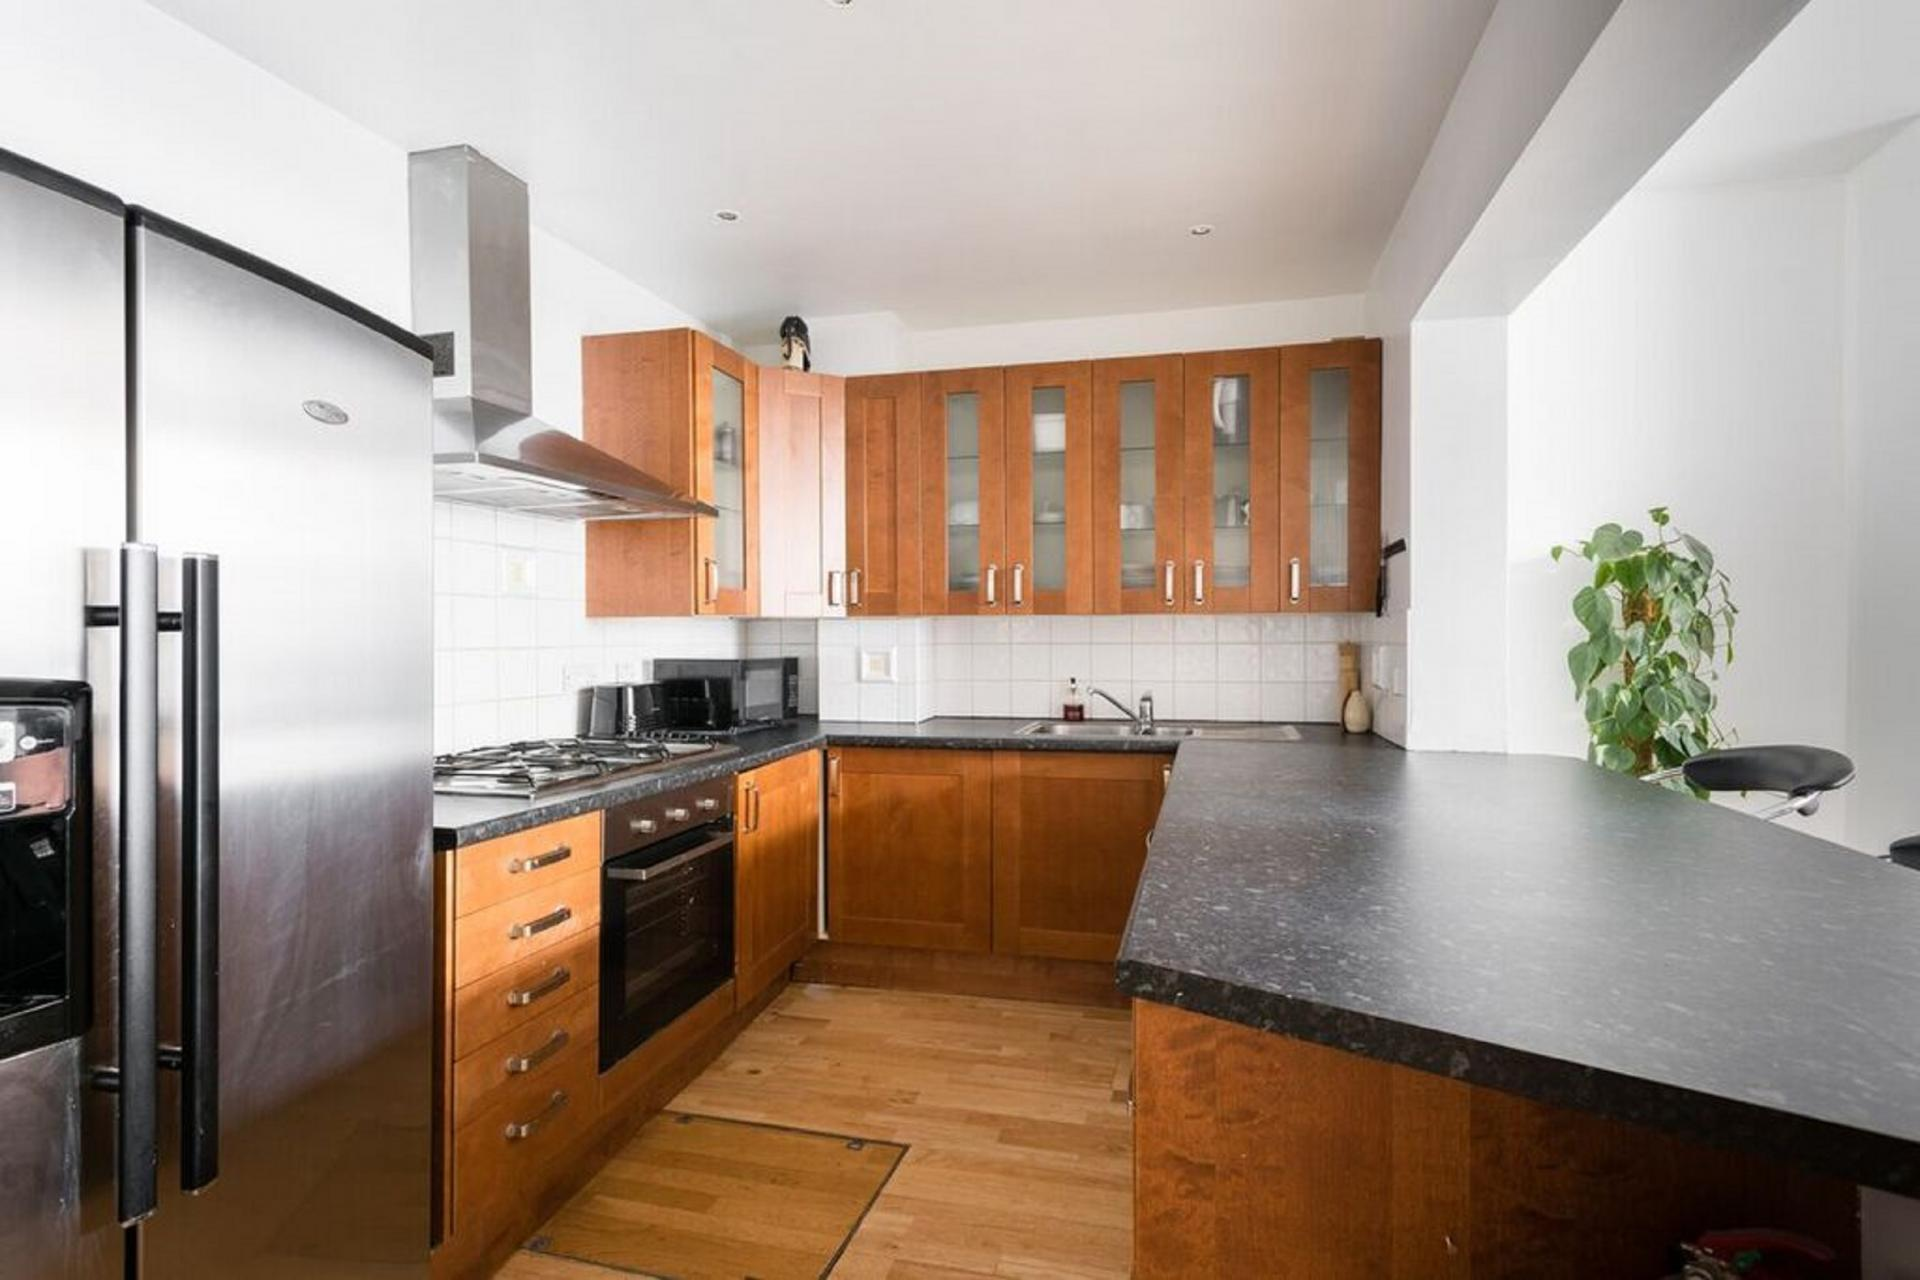 Fully equipped kitchen at The Bayswater Gardens House, Bayswater, London